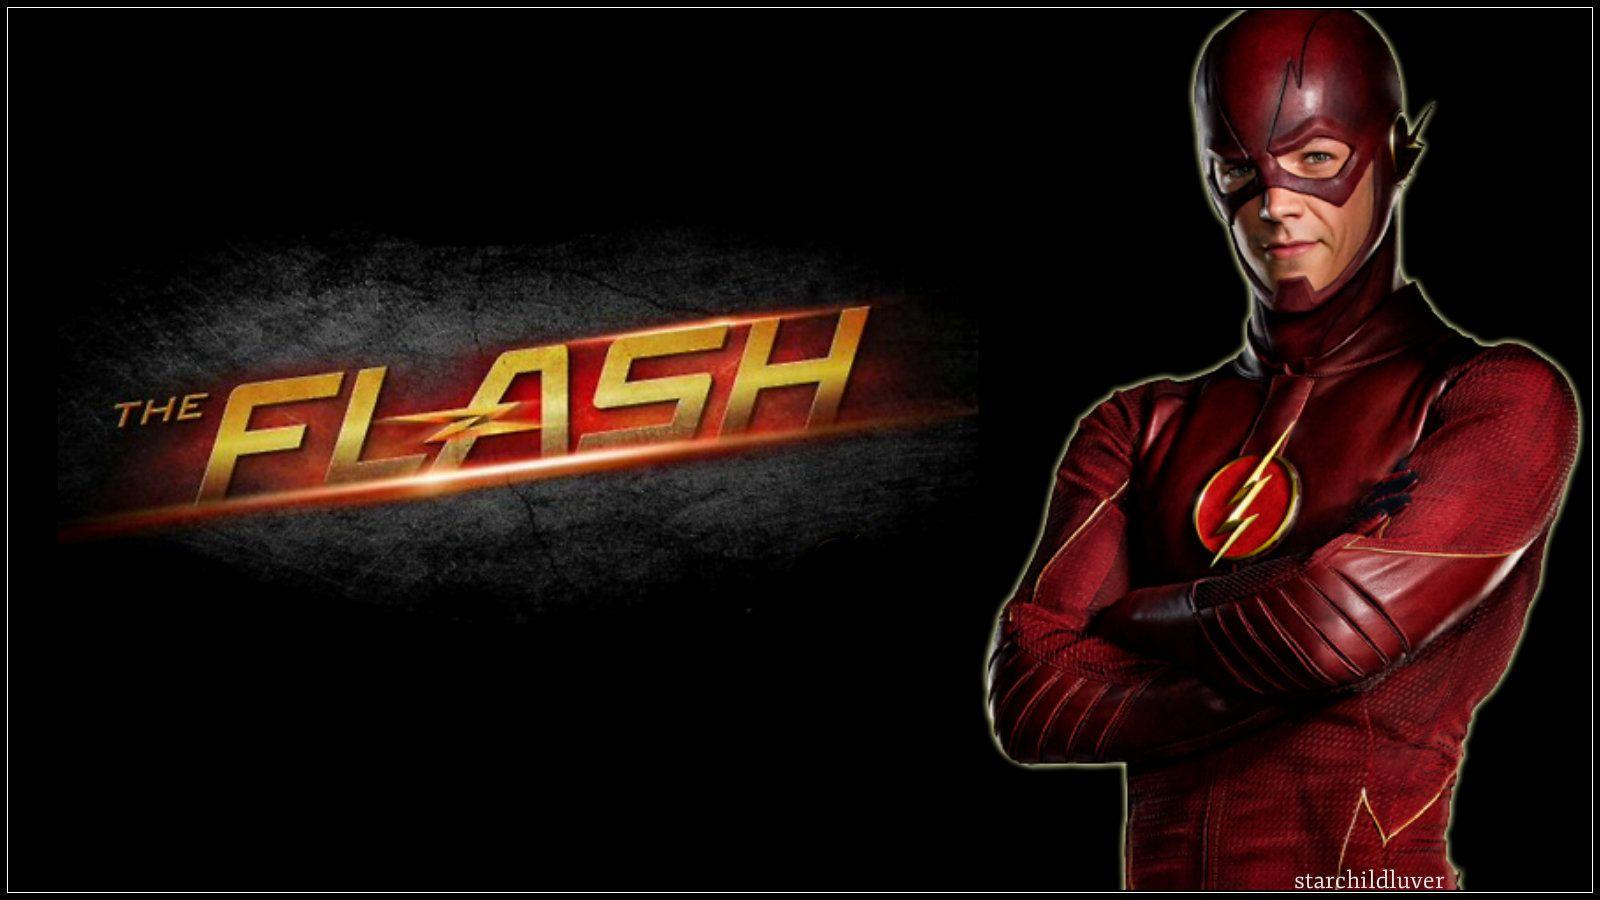 the flash wallpapers pictures, image High Quality